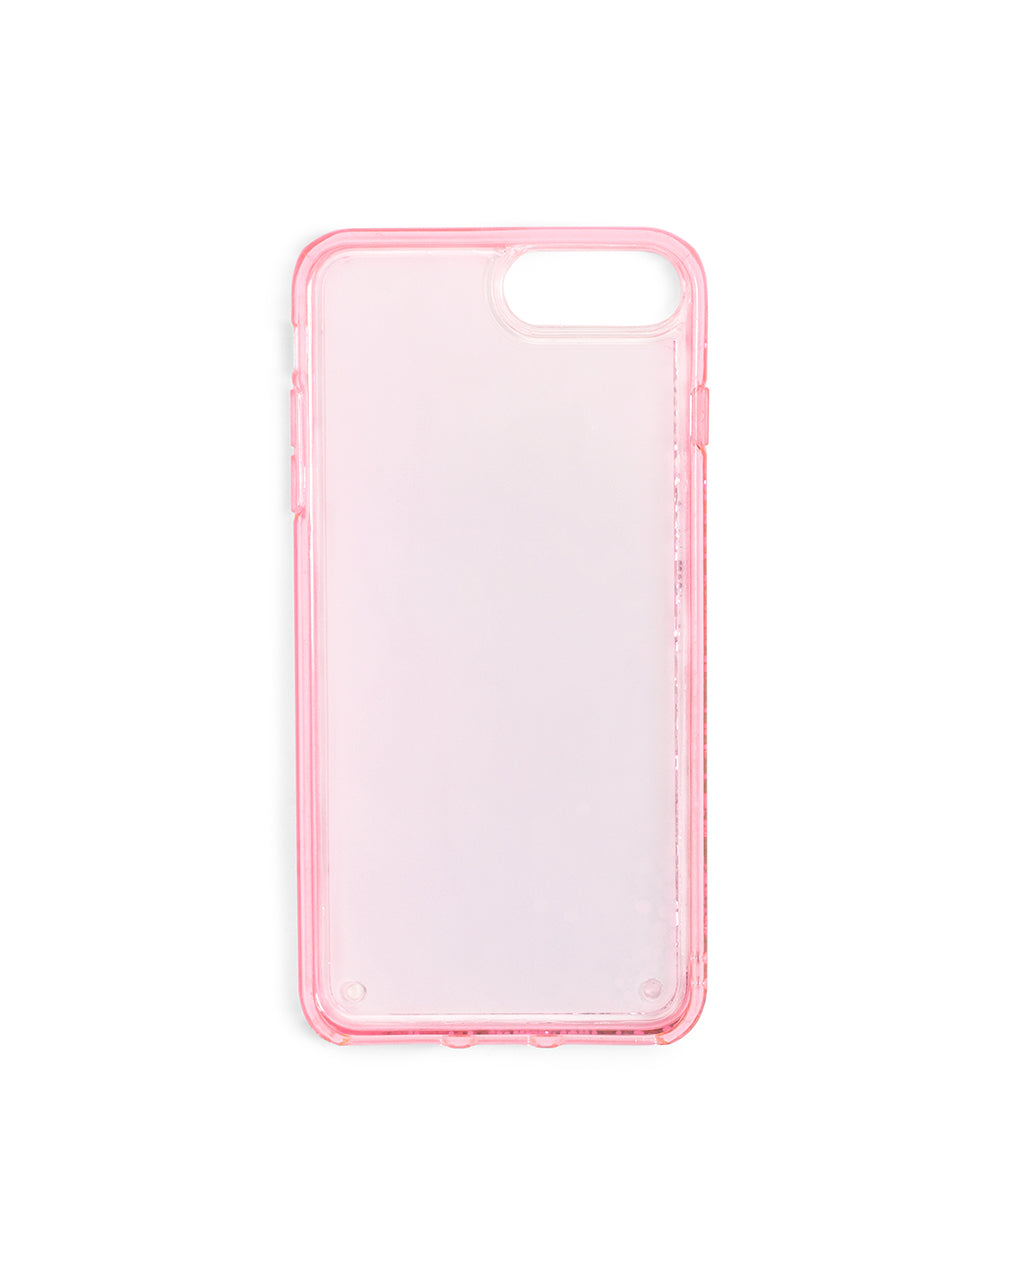 Interior view of pink iPhone case